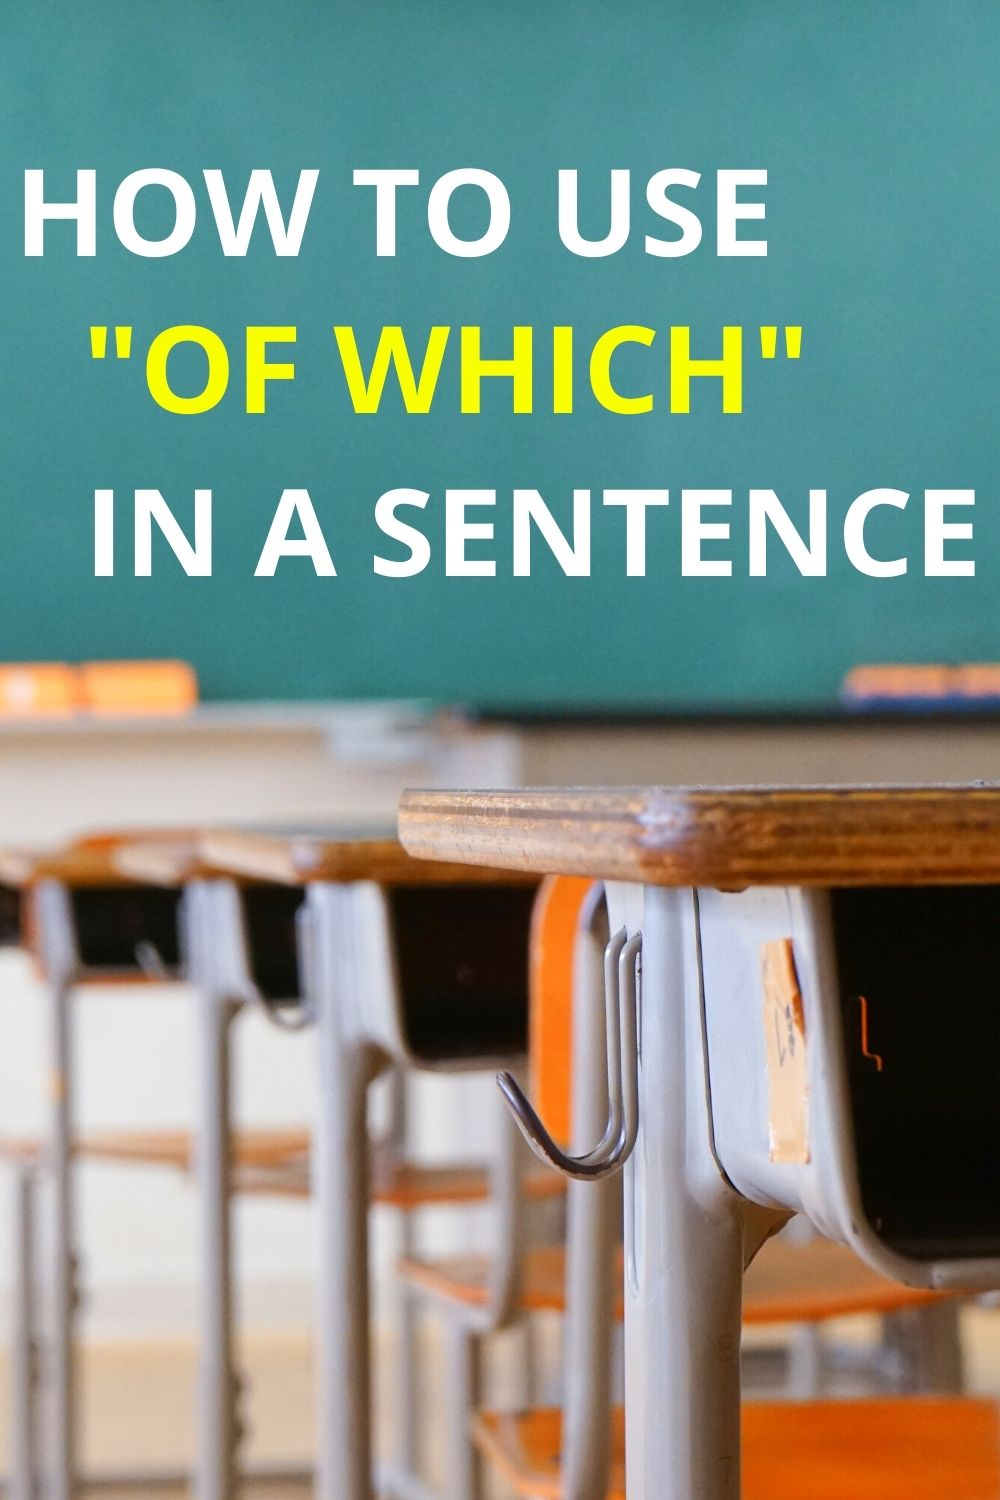 How to Use of which in a Sentence